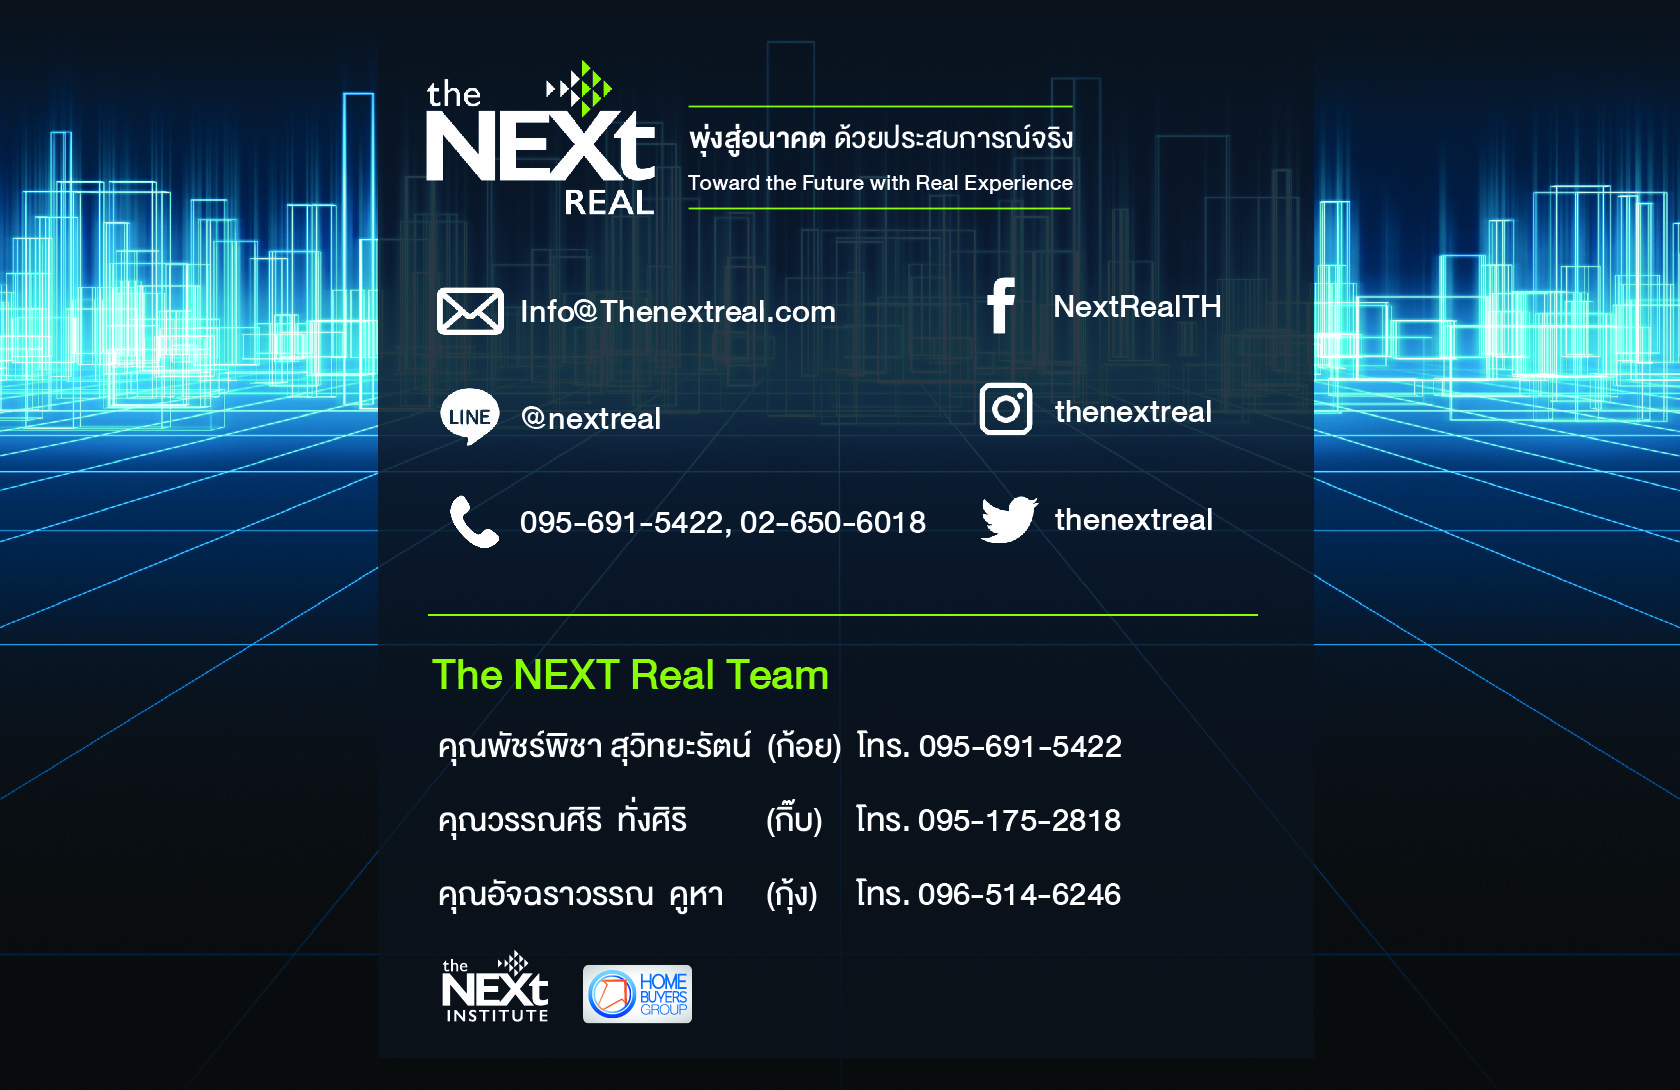 Contact TheNextReal